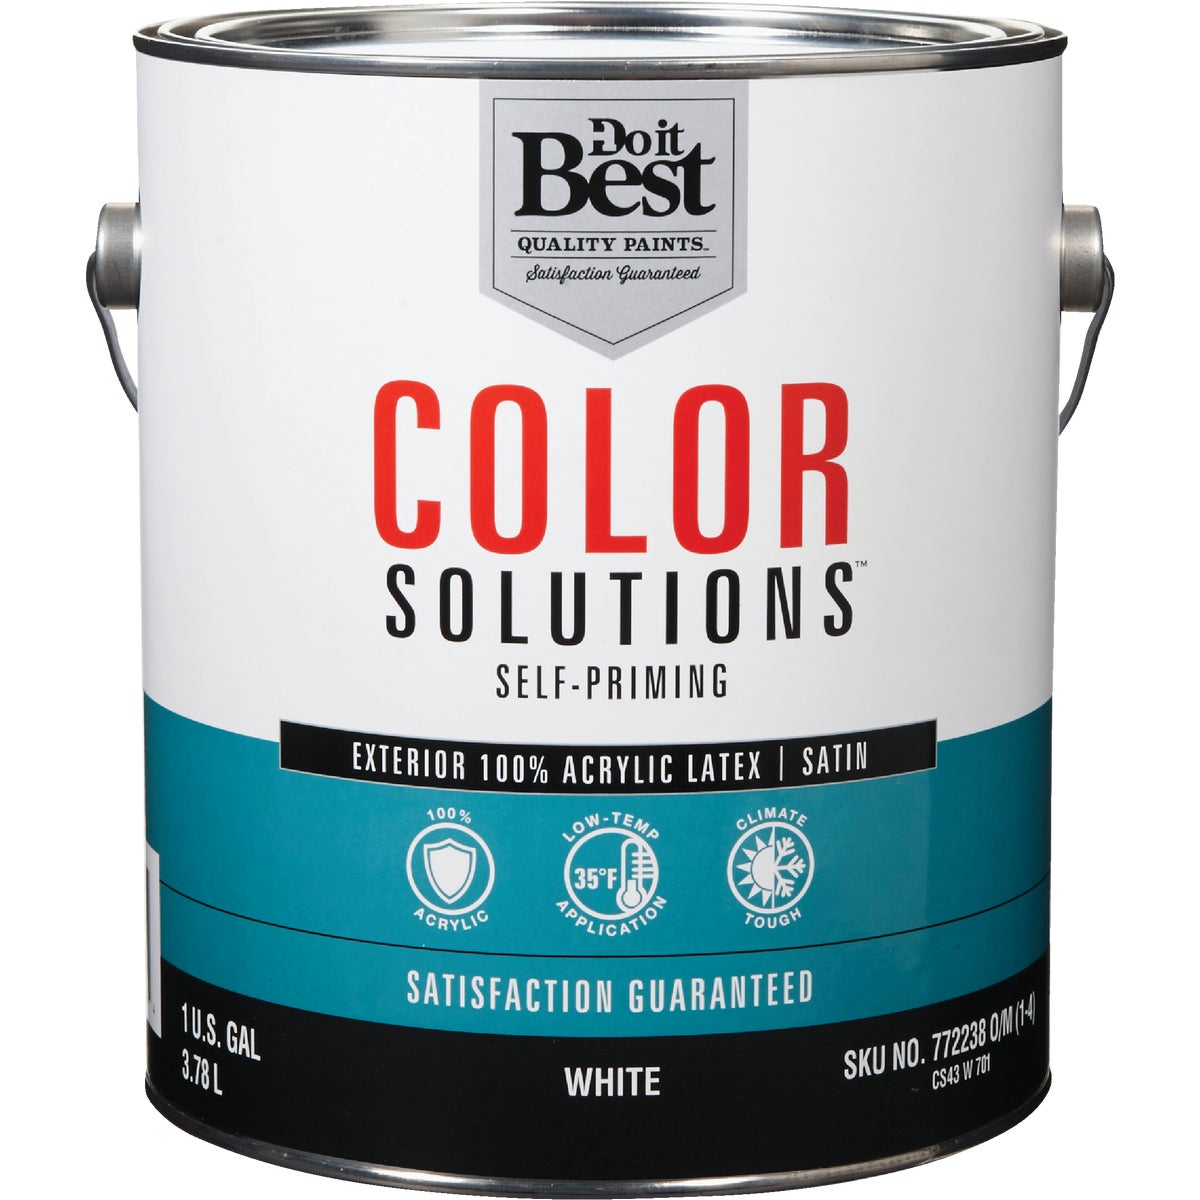 EXT SATIN WHITE PAINT - CS43W0701-16 by Do it Best